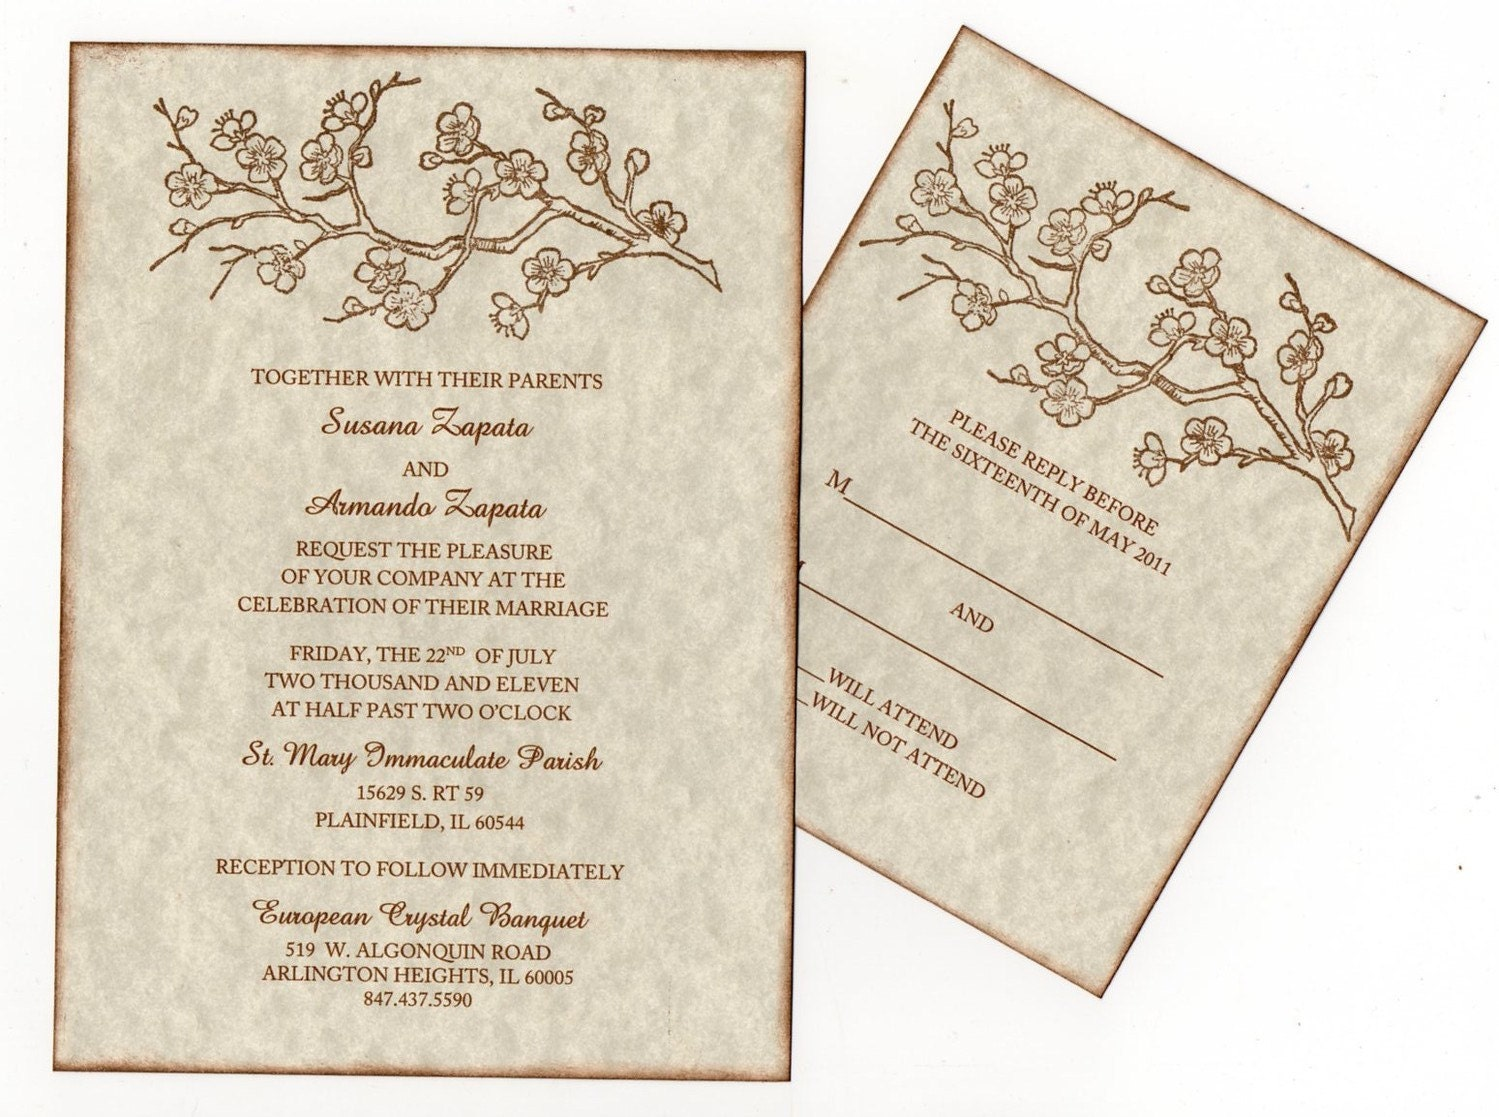 Indian wedding invitation card designs manish sharma indian wedding invitation card designs stopboris